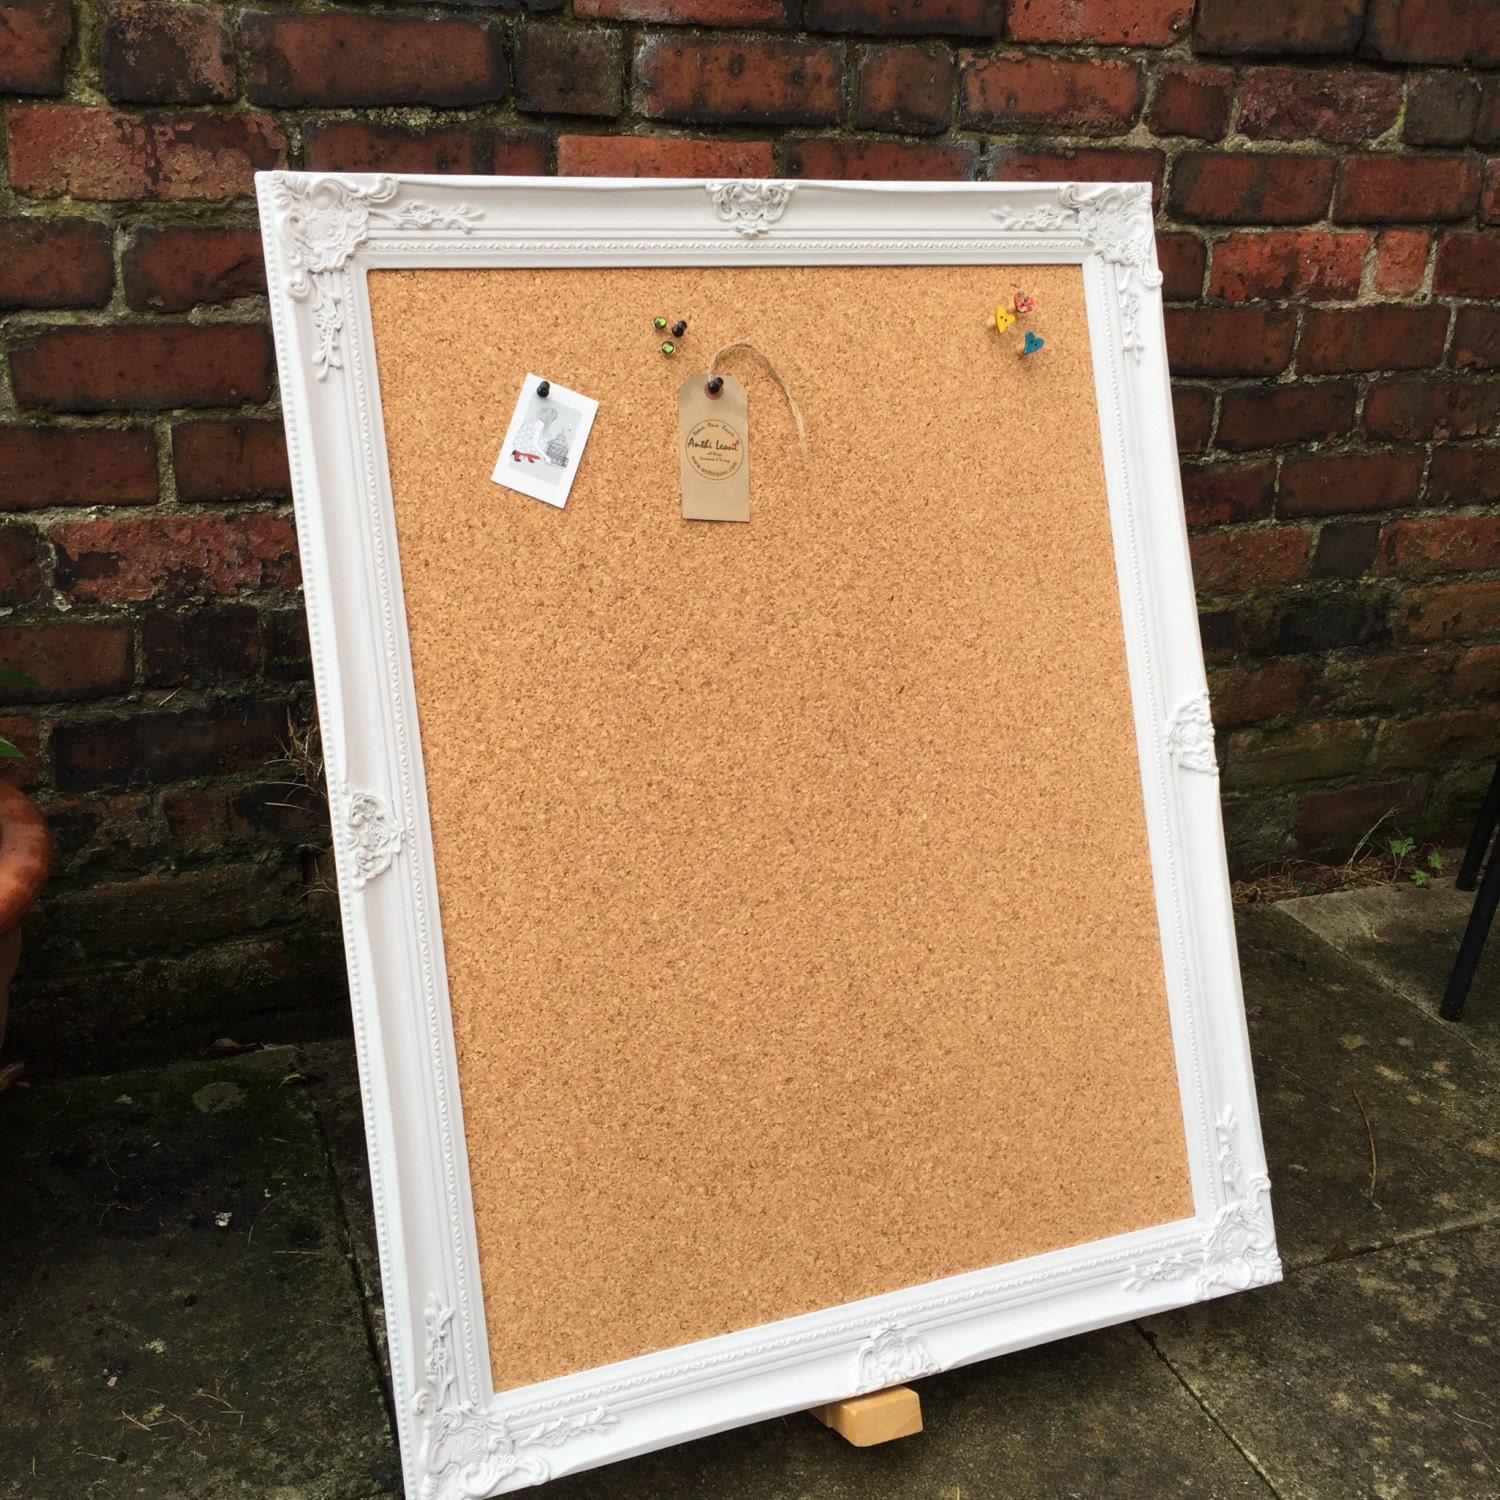 large framed corkboard extra large pin board ornate cork board shabby chic notice board large vision board framed message board